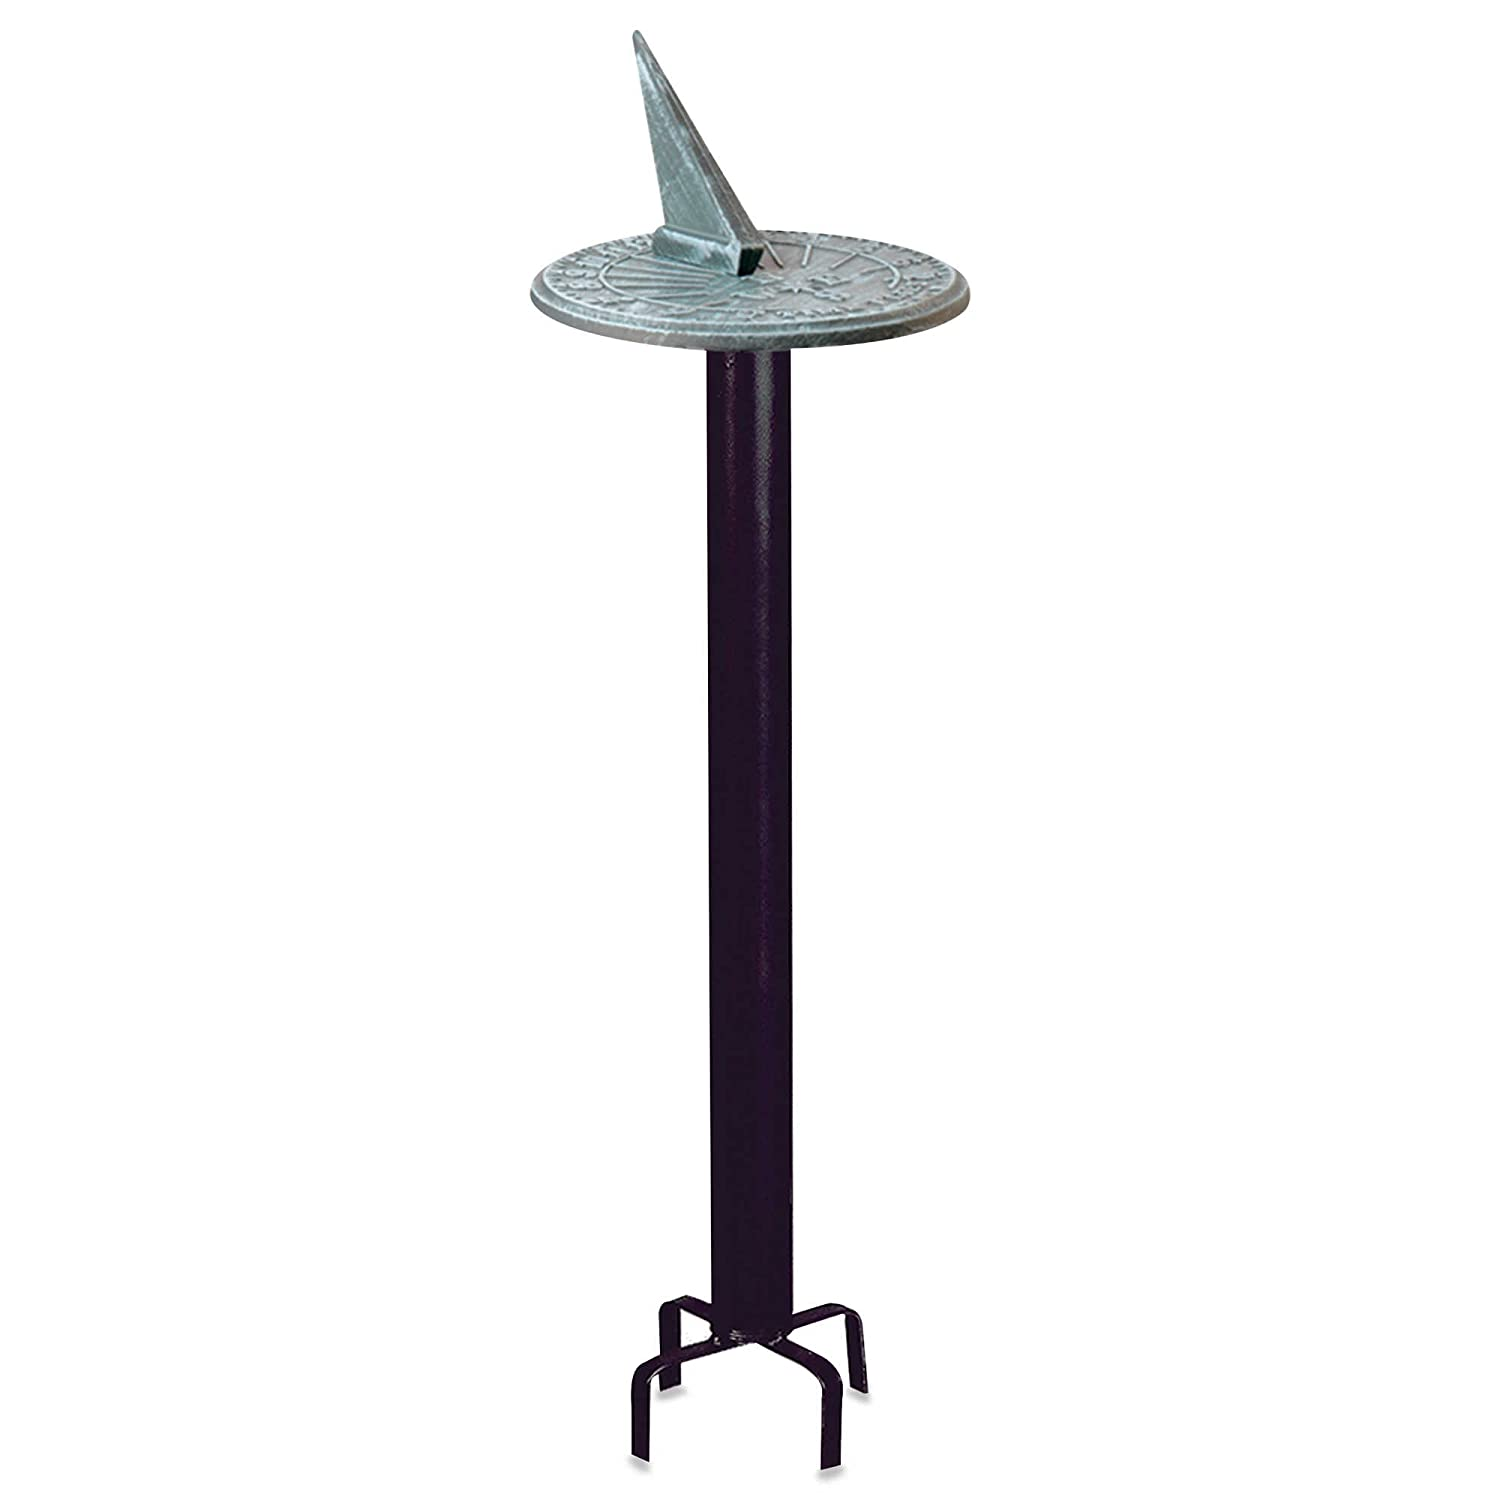 Rome Industries Black Classic Pedestal Sundial Base Rome Industries®